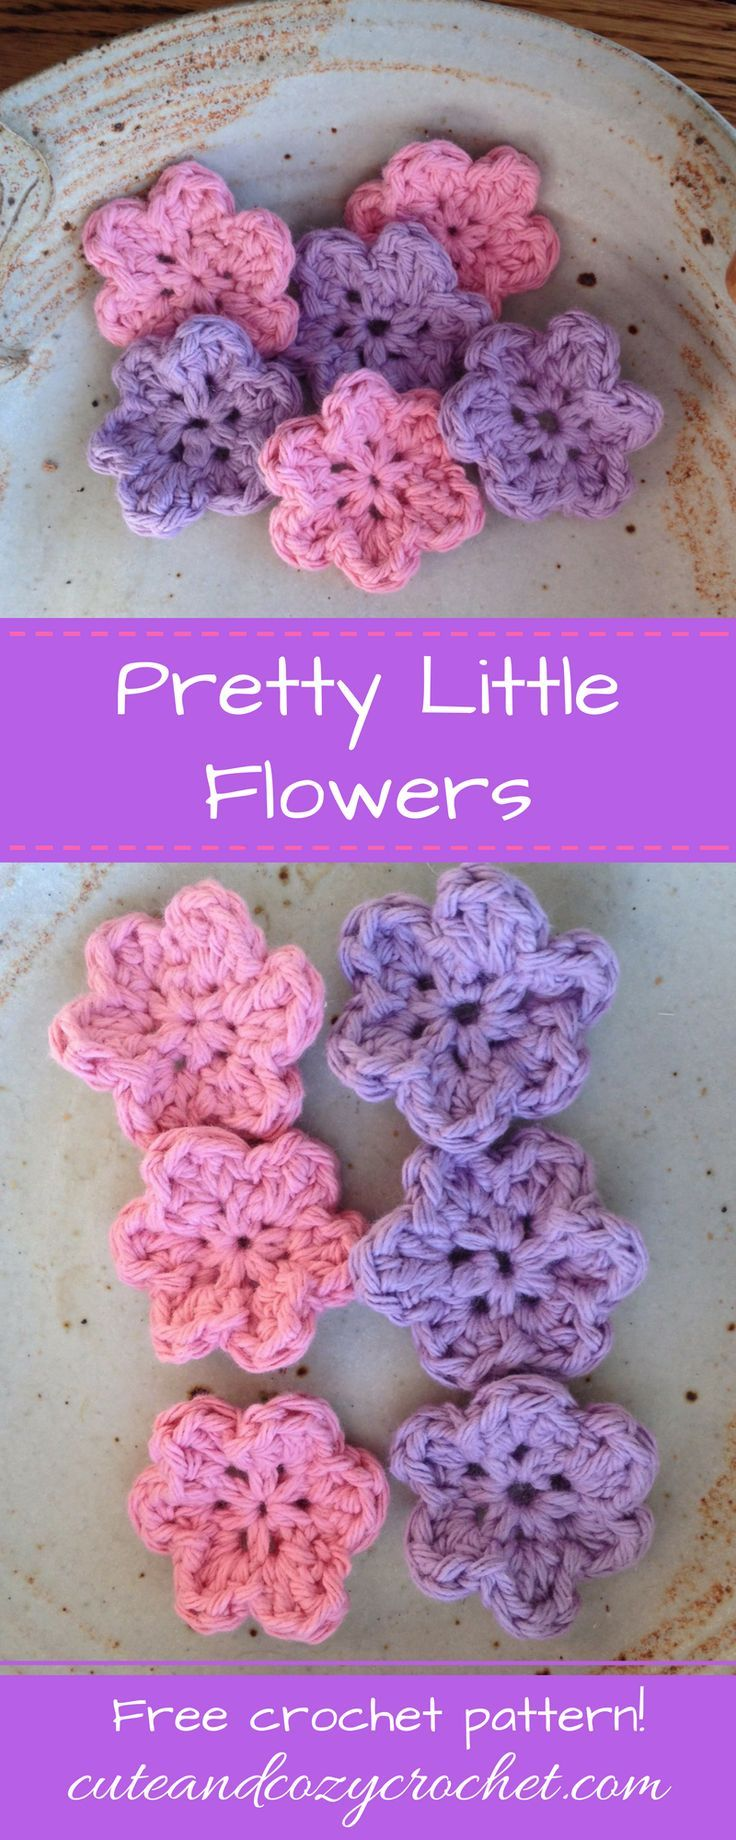 How to Crochet a Pretty Little Flower | Small flowers, Free crochet ...